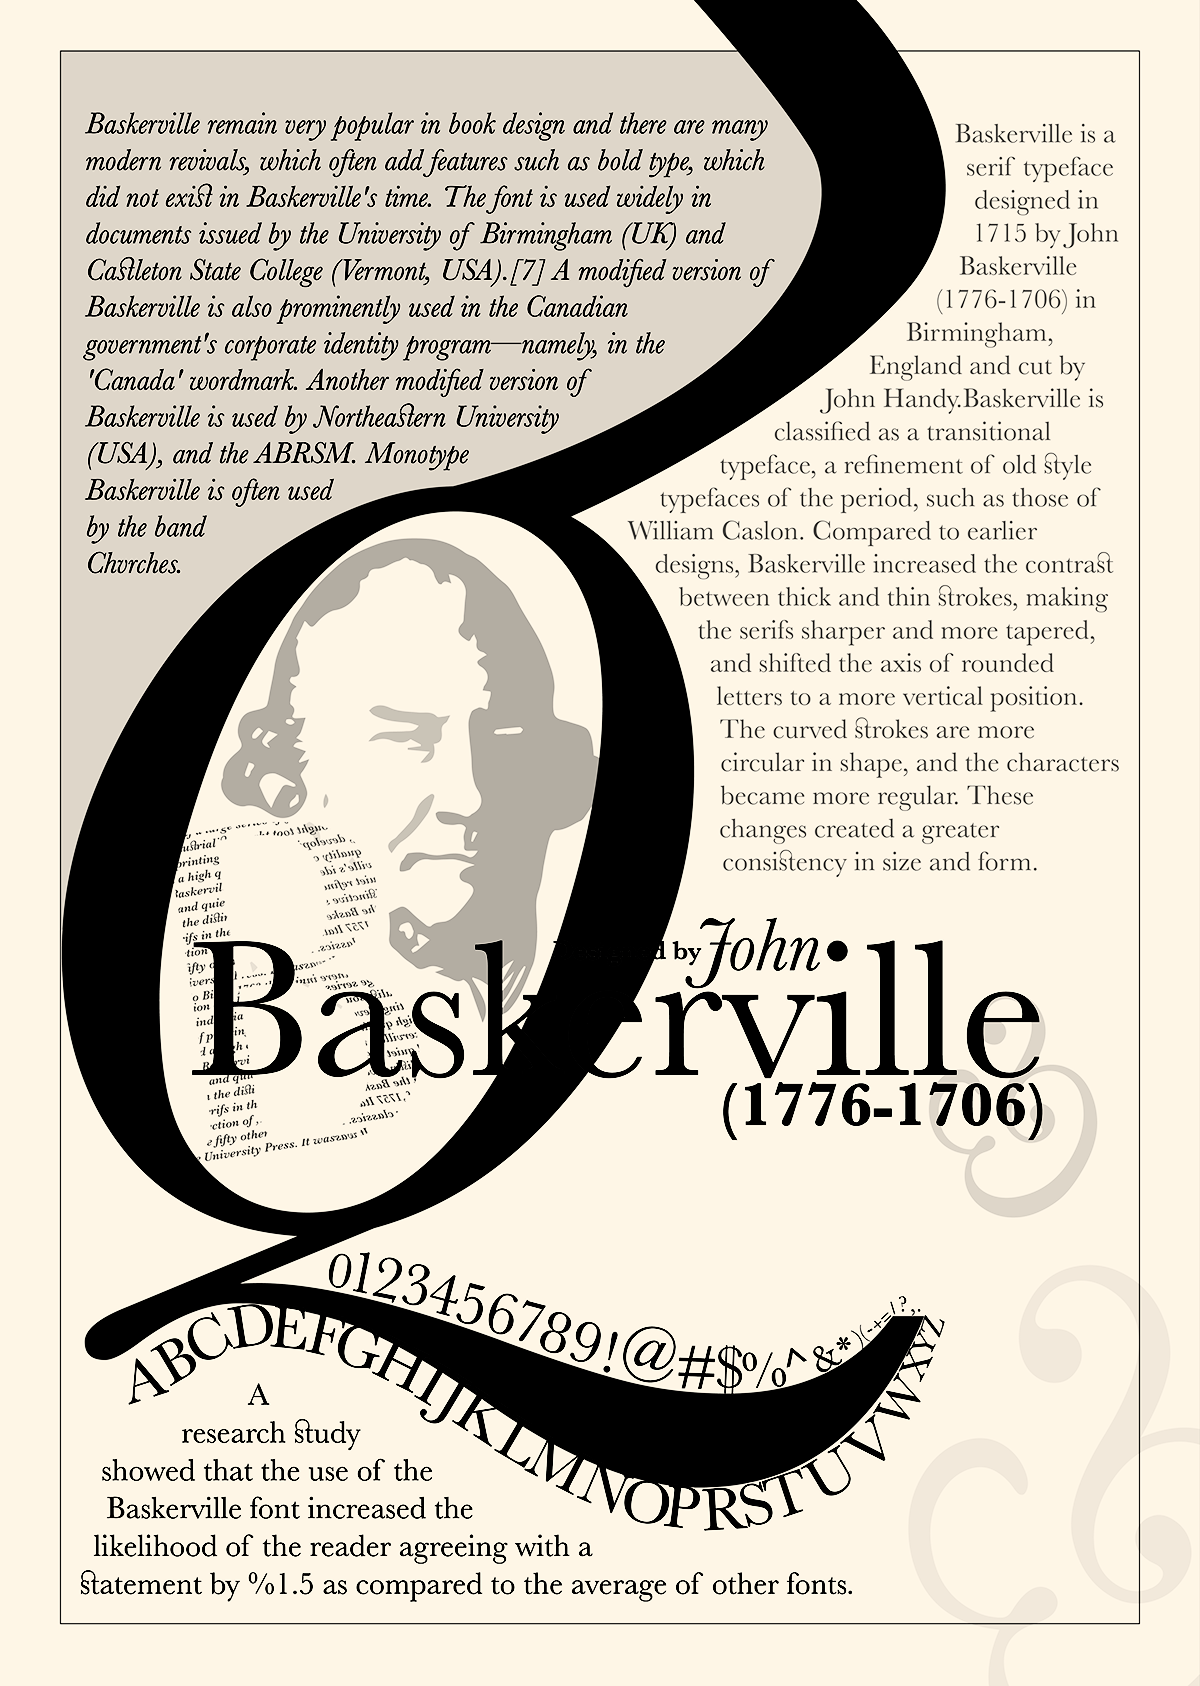 john baskerville John baskerville was an english businessman, in areas including japanning and papier-mâché, but he is best remembered as a printer and type designer.